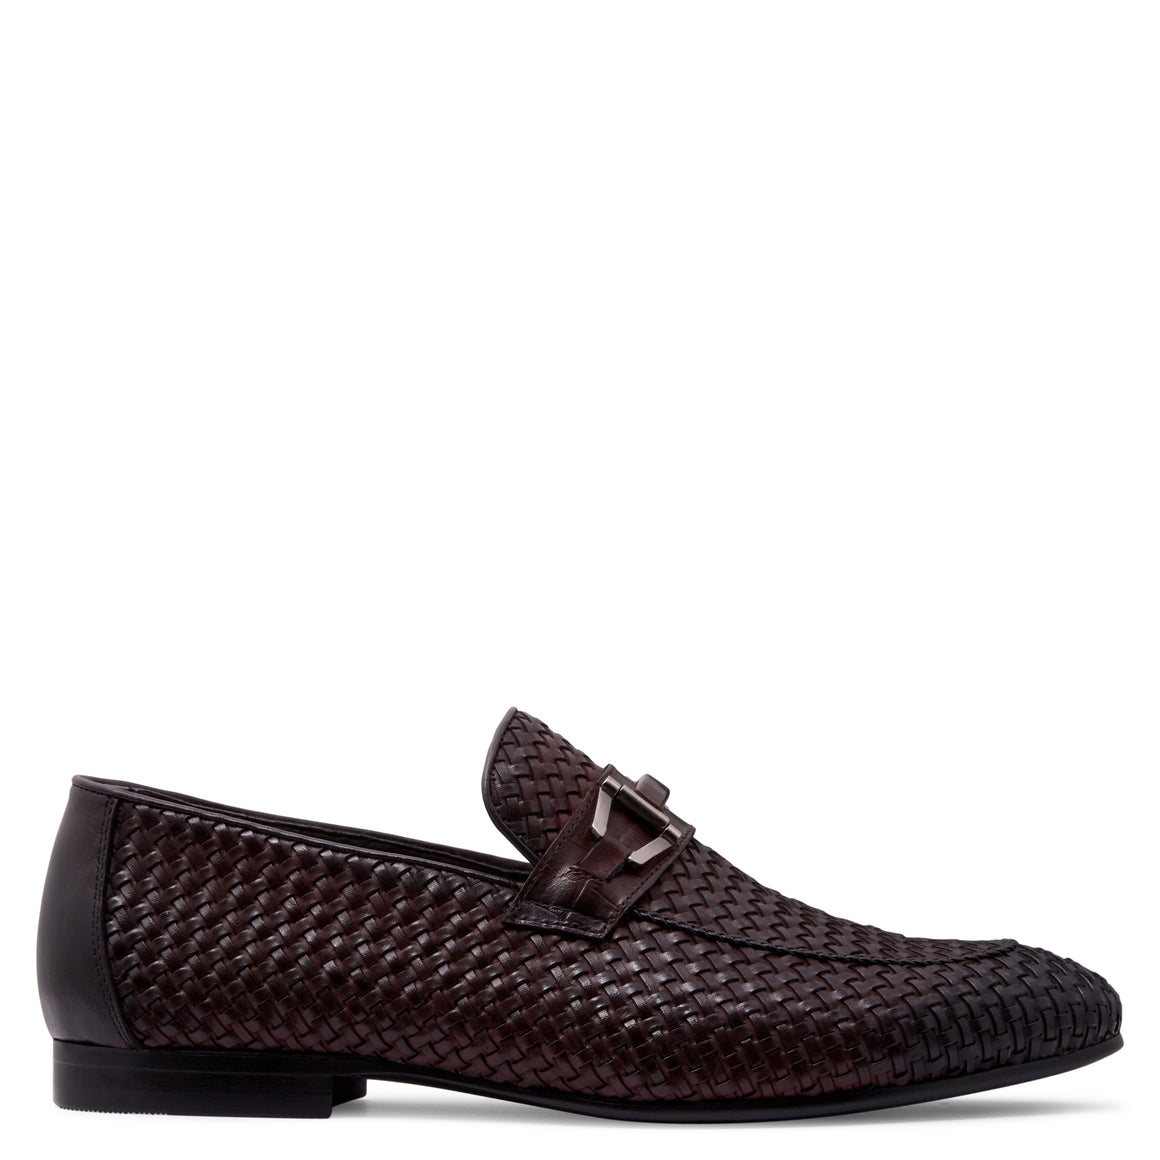 Miami Brown Loafers